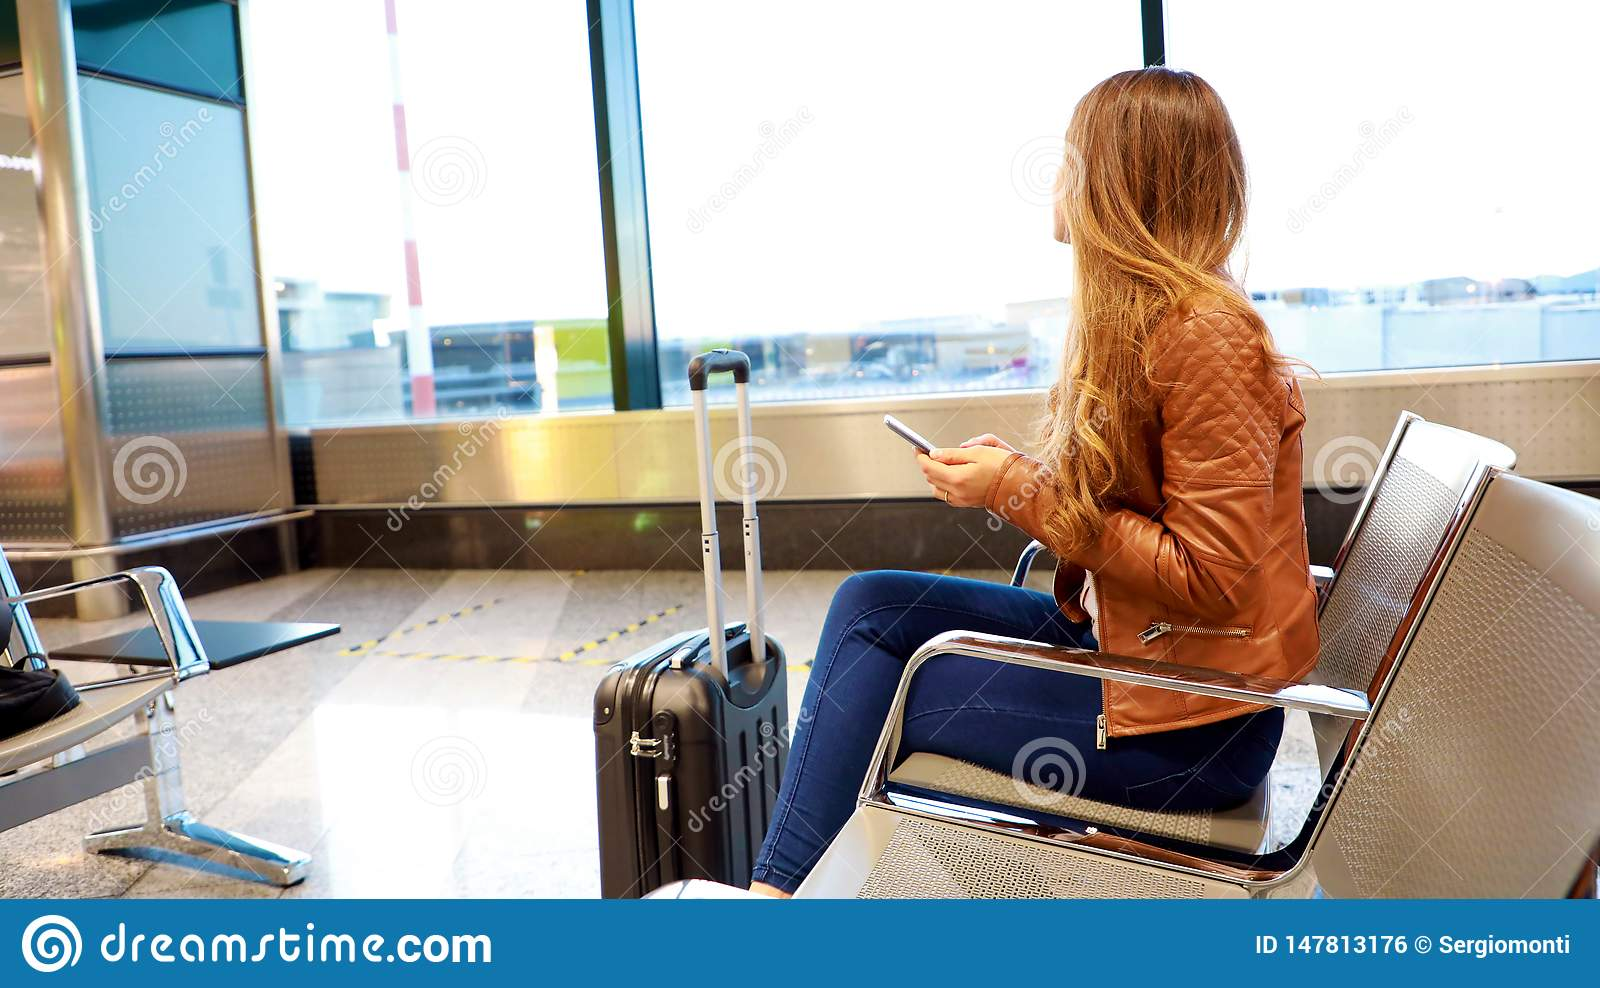 Beautiful young woman looking out window at flying airplane while waiting boarding on aircraft in airport lounge